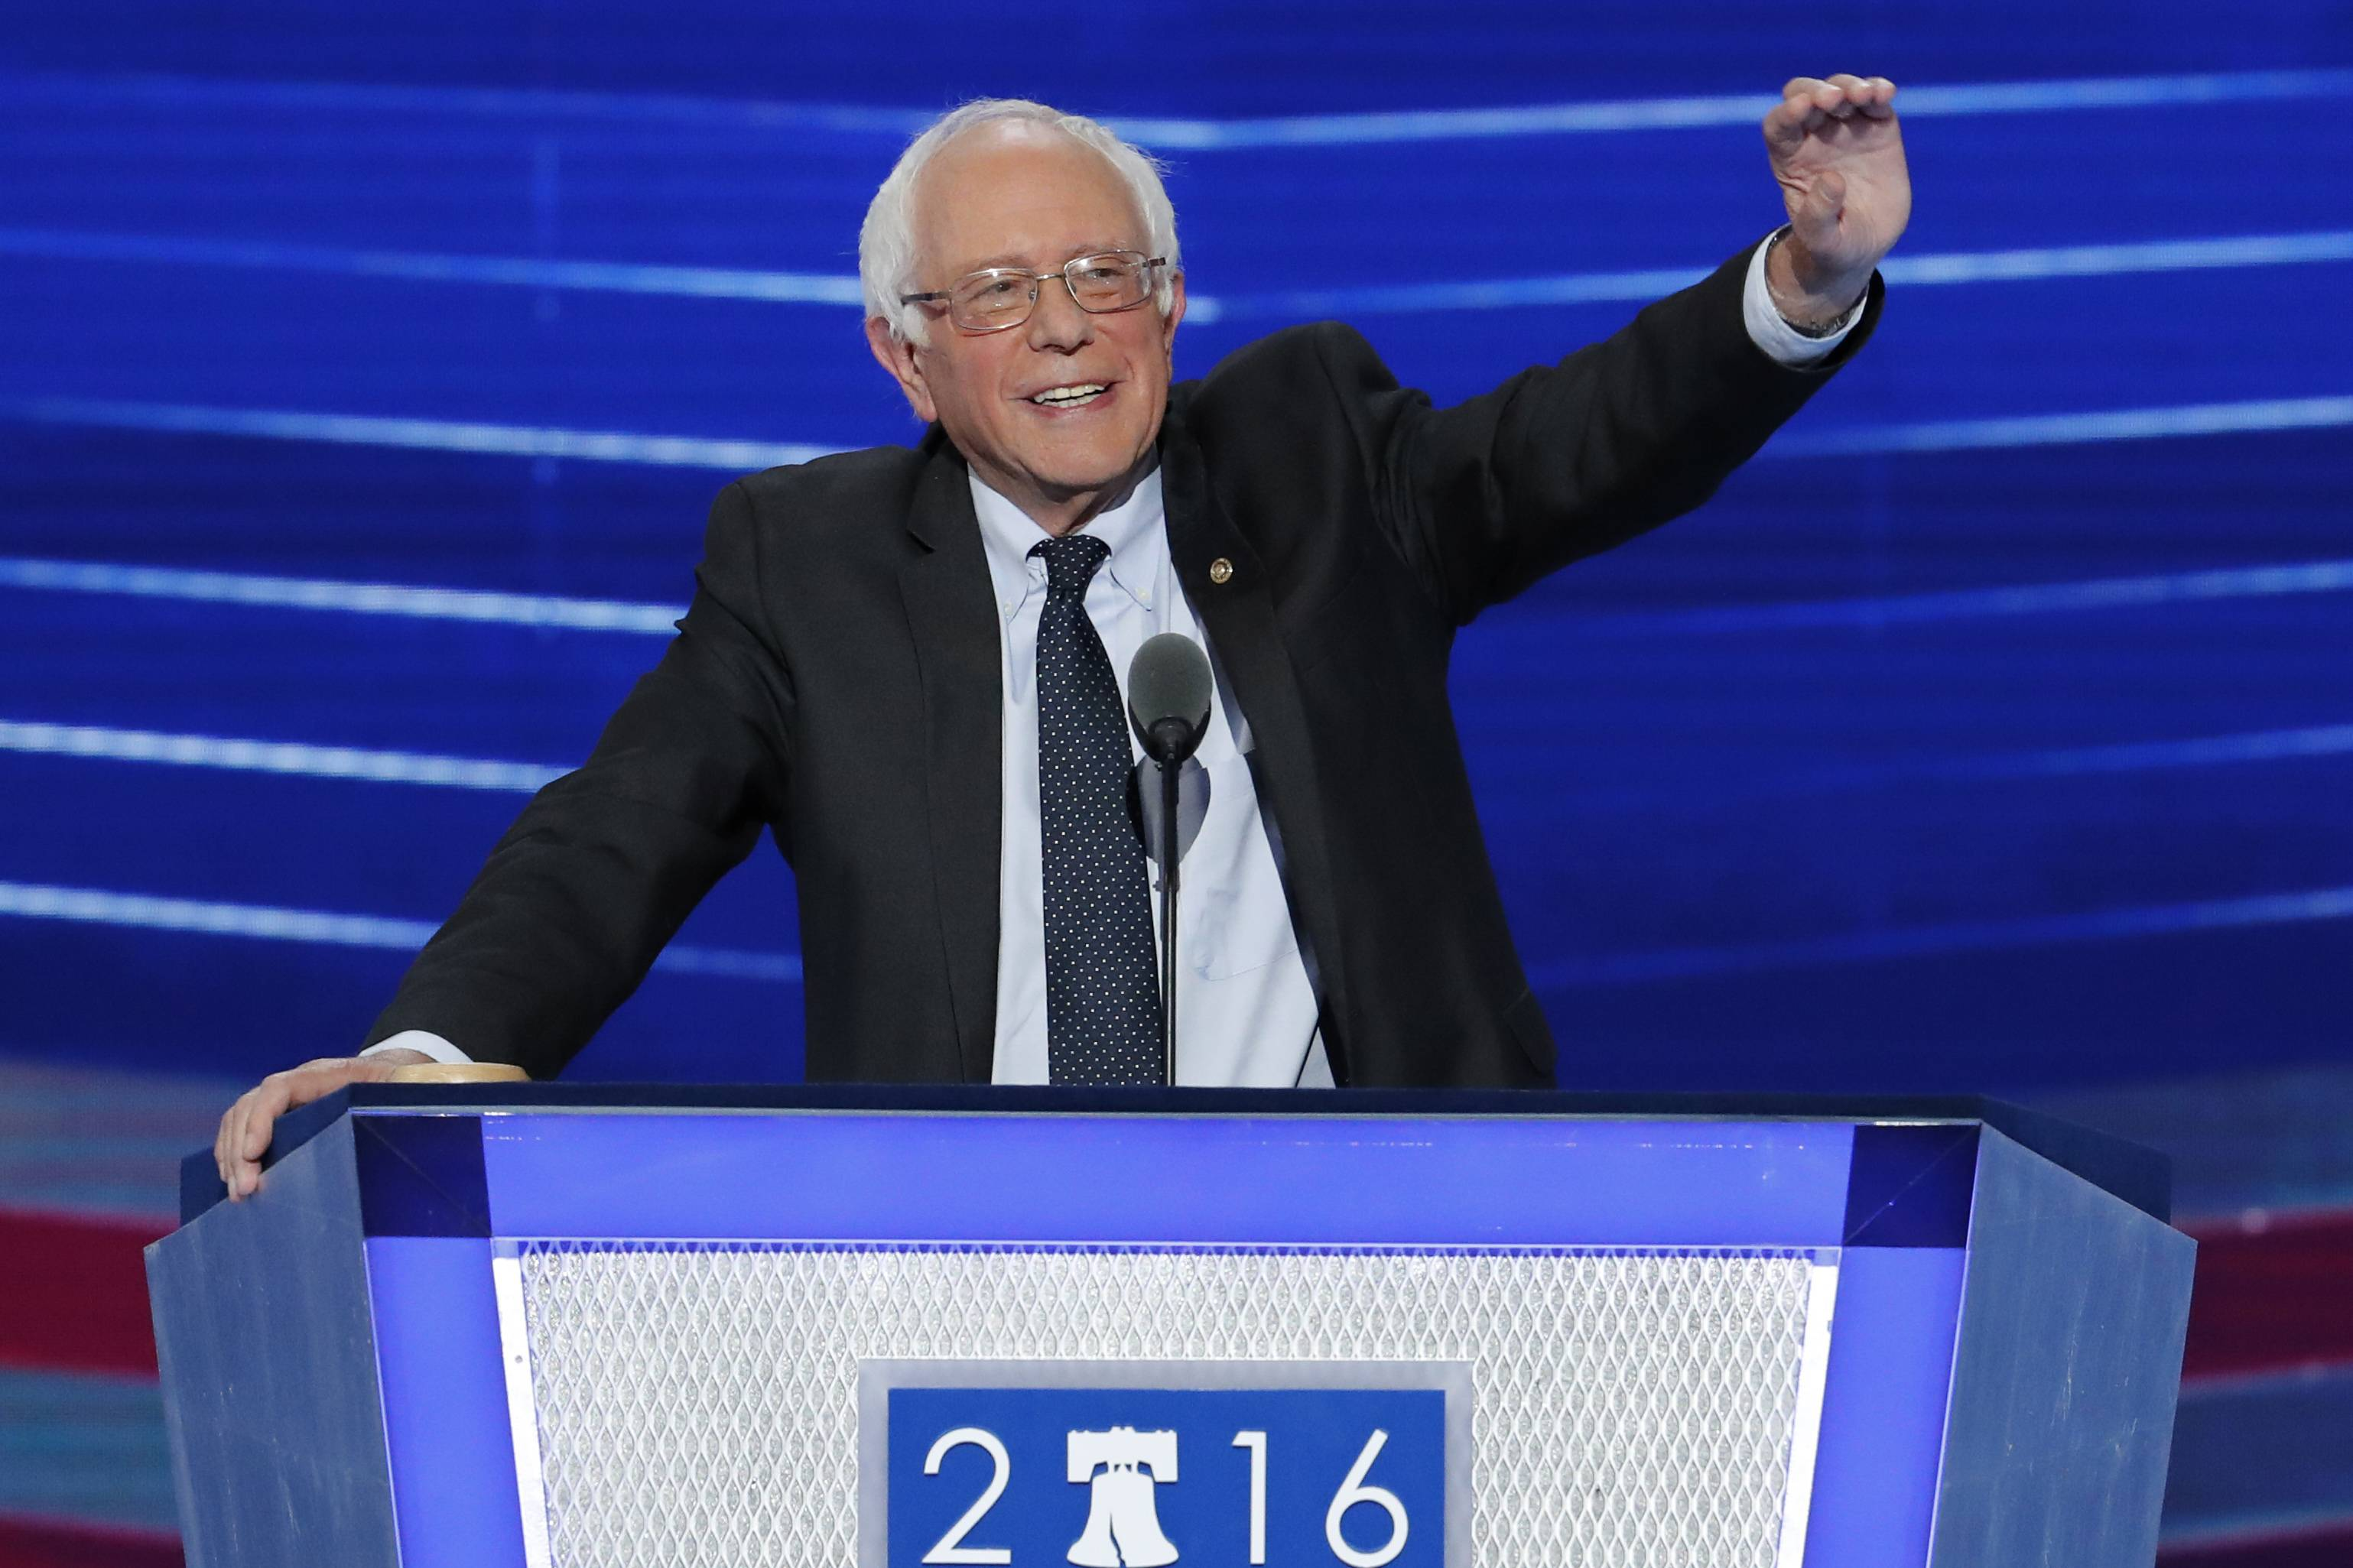 Former Democratic presidential candidate, Sen. Bernie Sanders, I-Vt., waves to delegates before speaking during the first day of the Democratic National Convention in Philadelphia, Monday, July 25, 2016.